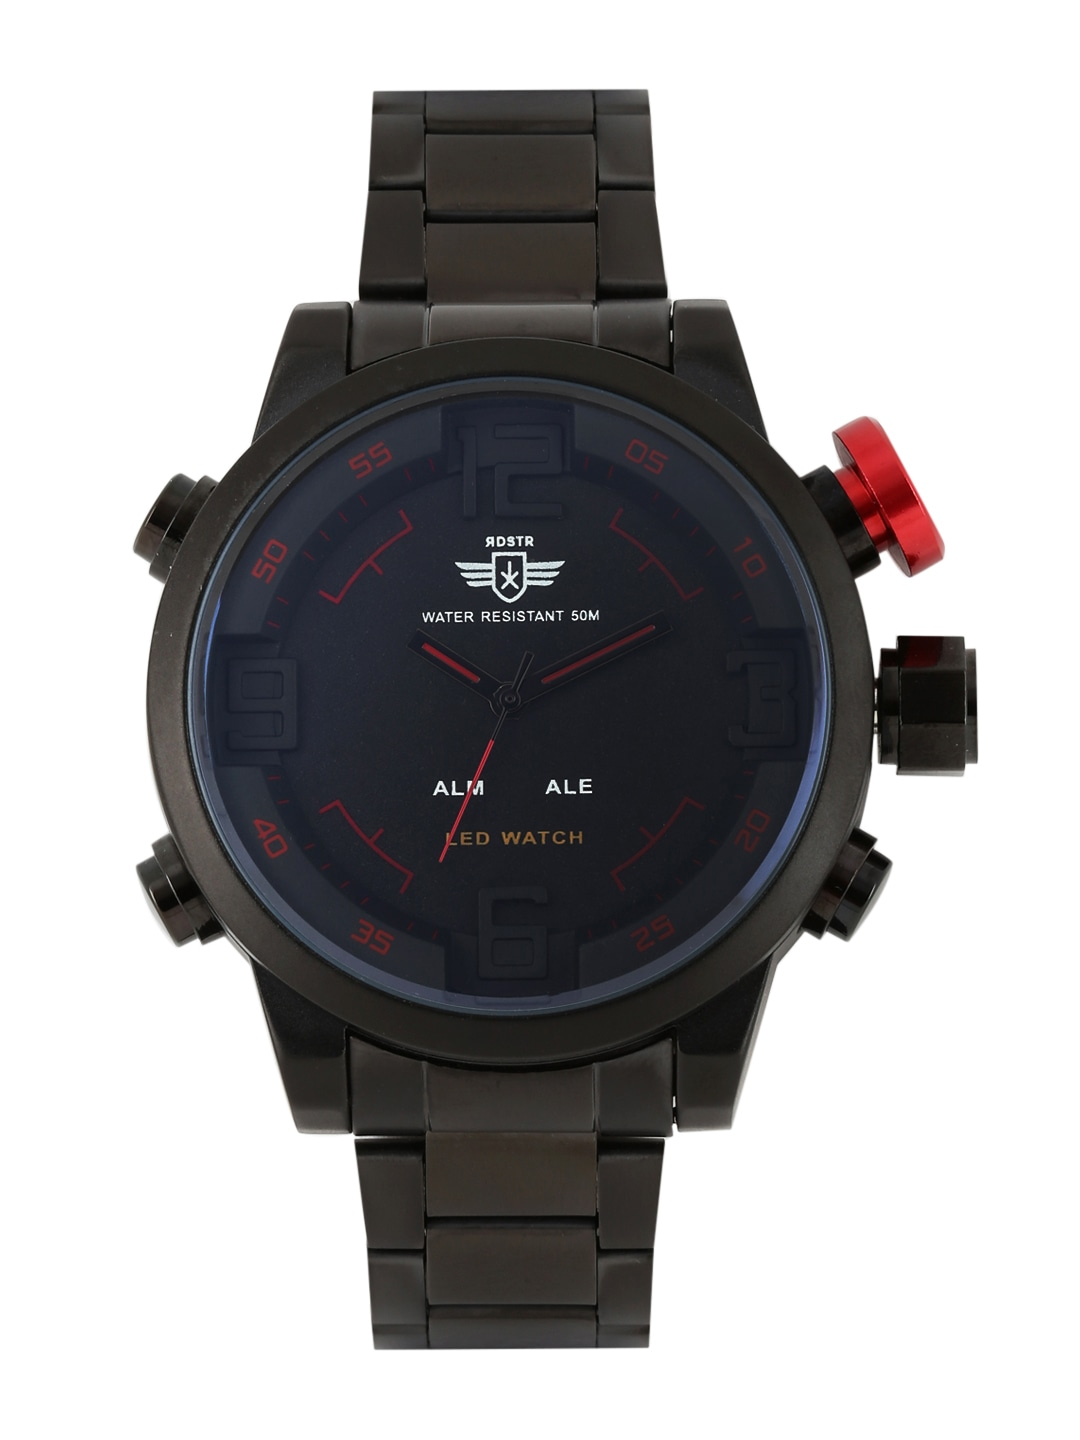 digital watches buy digital watches online in at best price rdstr men charcoal grey analogue digital watch mfb pn wth1608 a